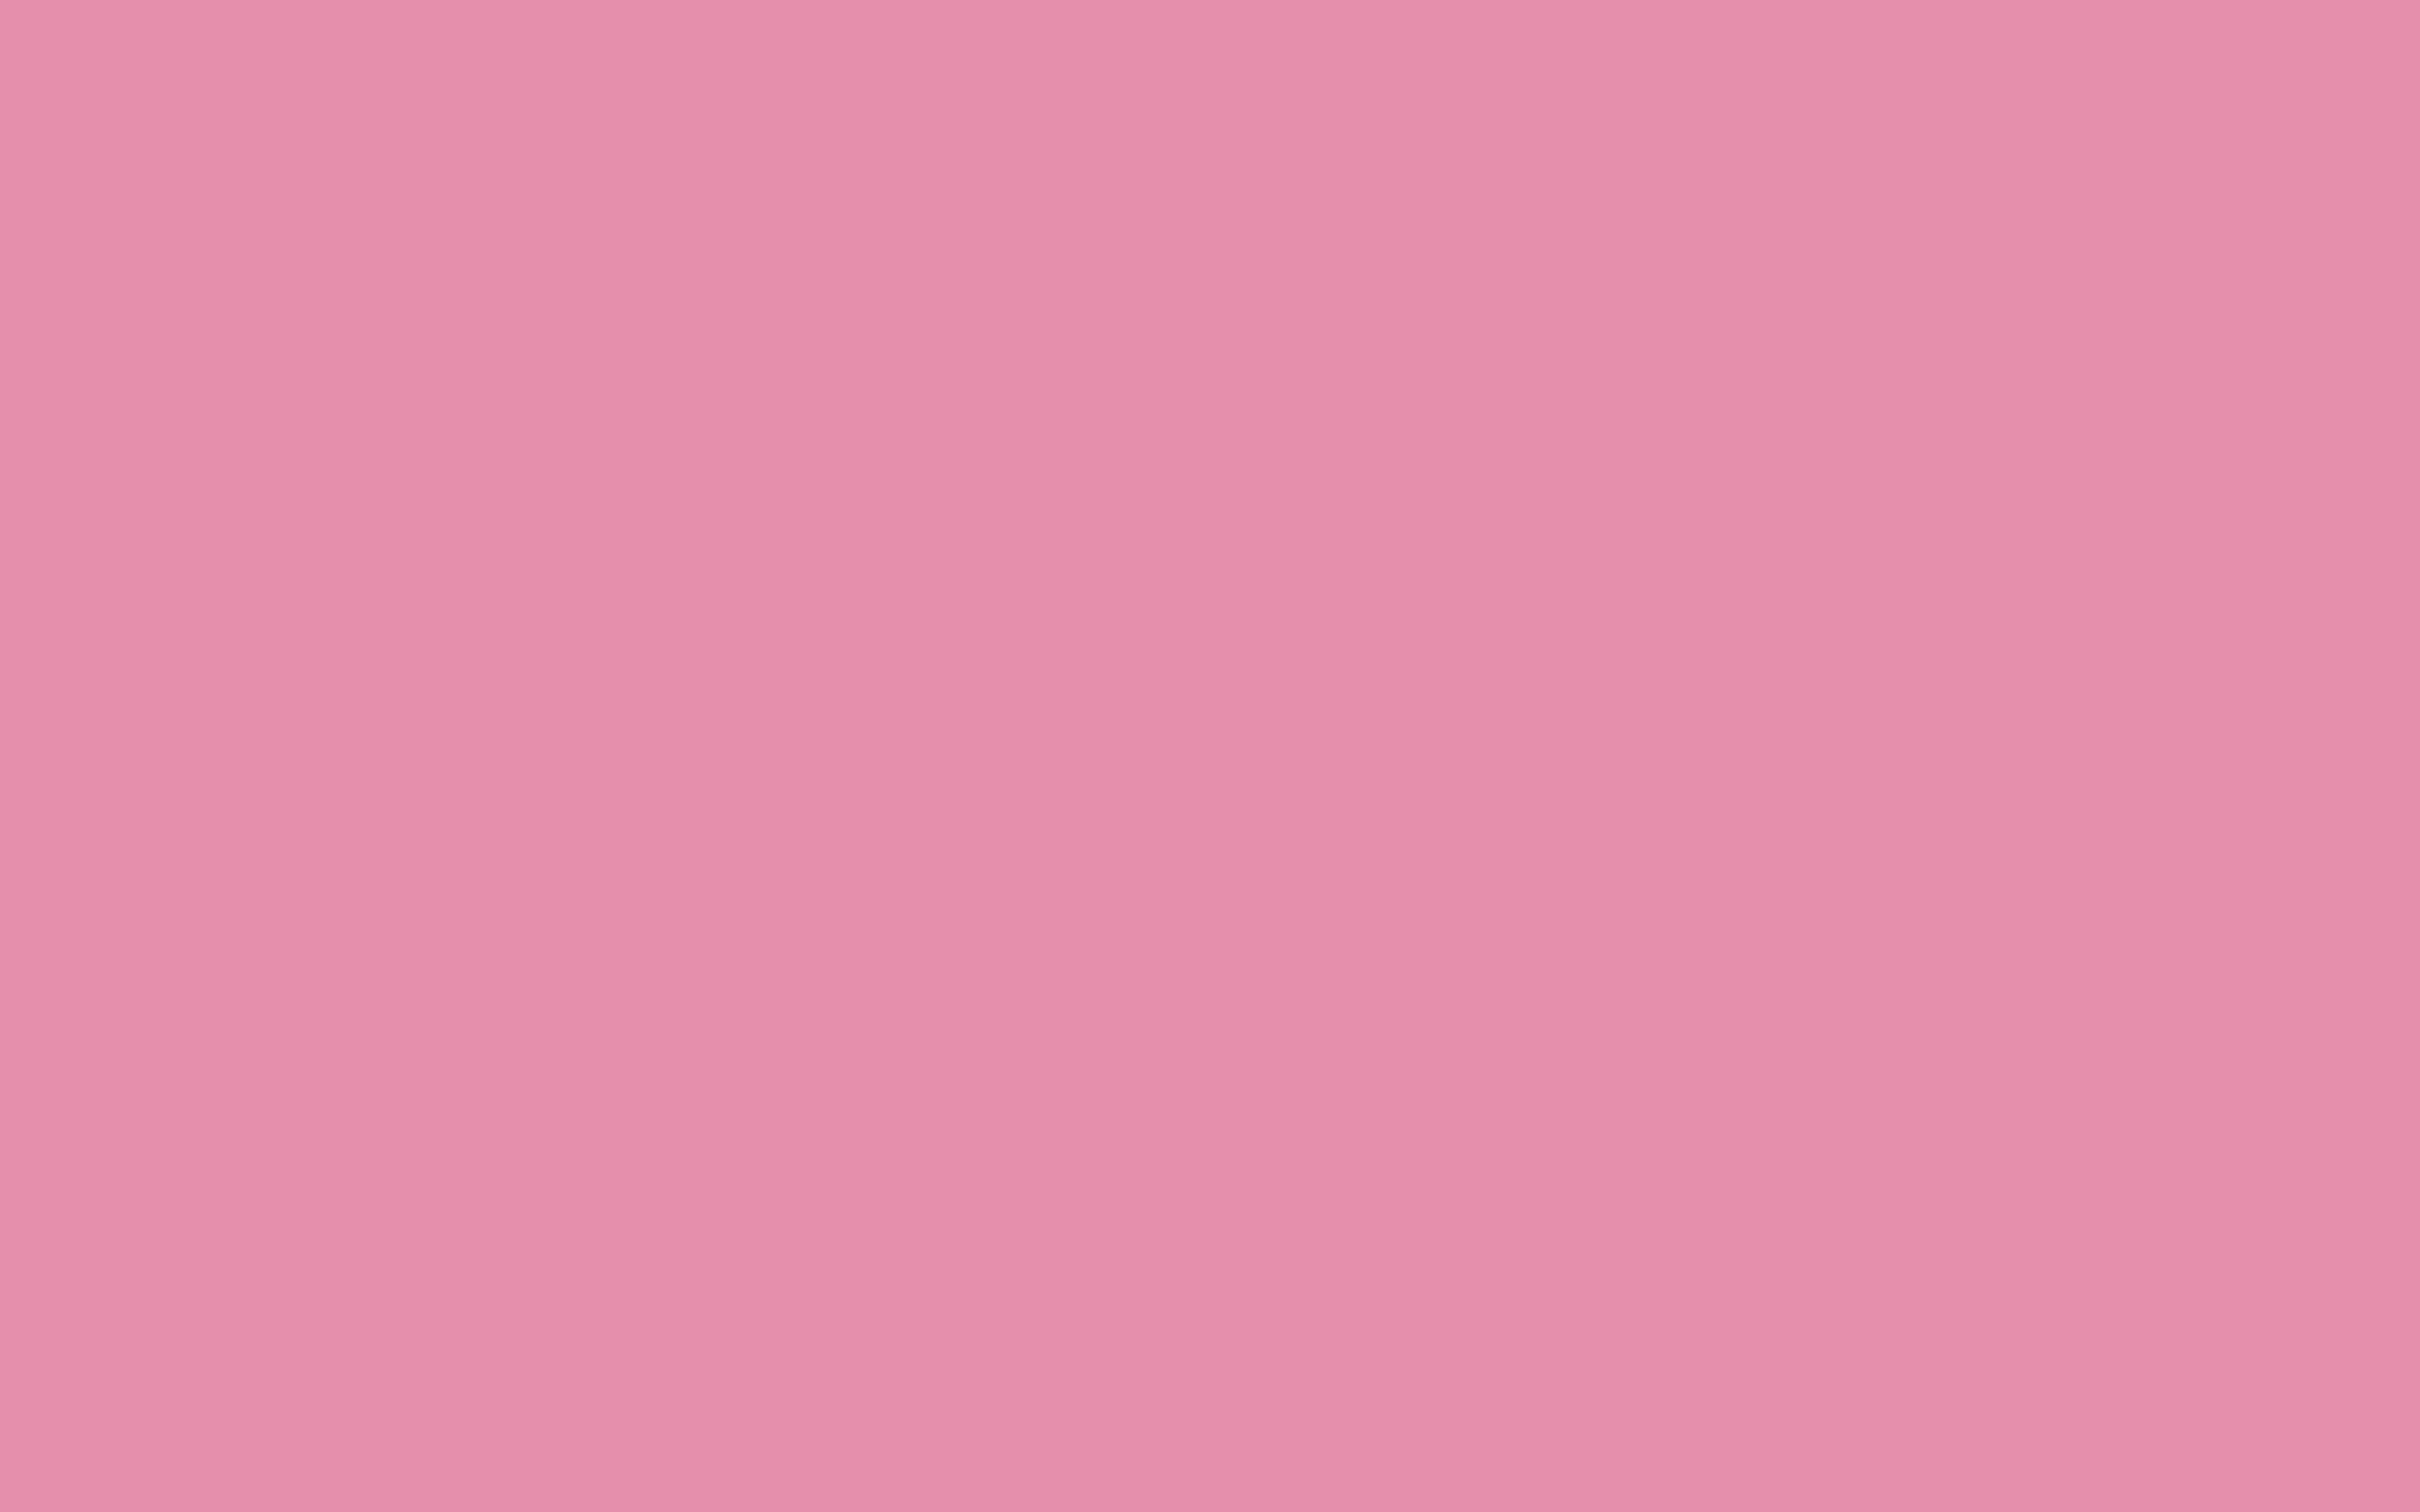 2880x1800 Charm Pink Solid Color Background 2880x1800